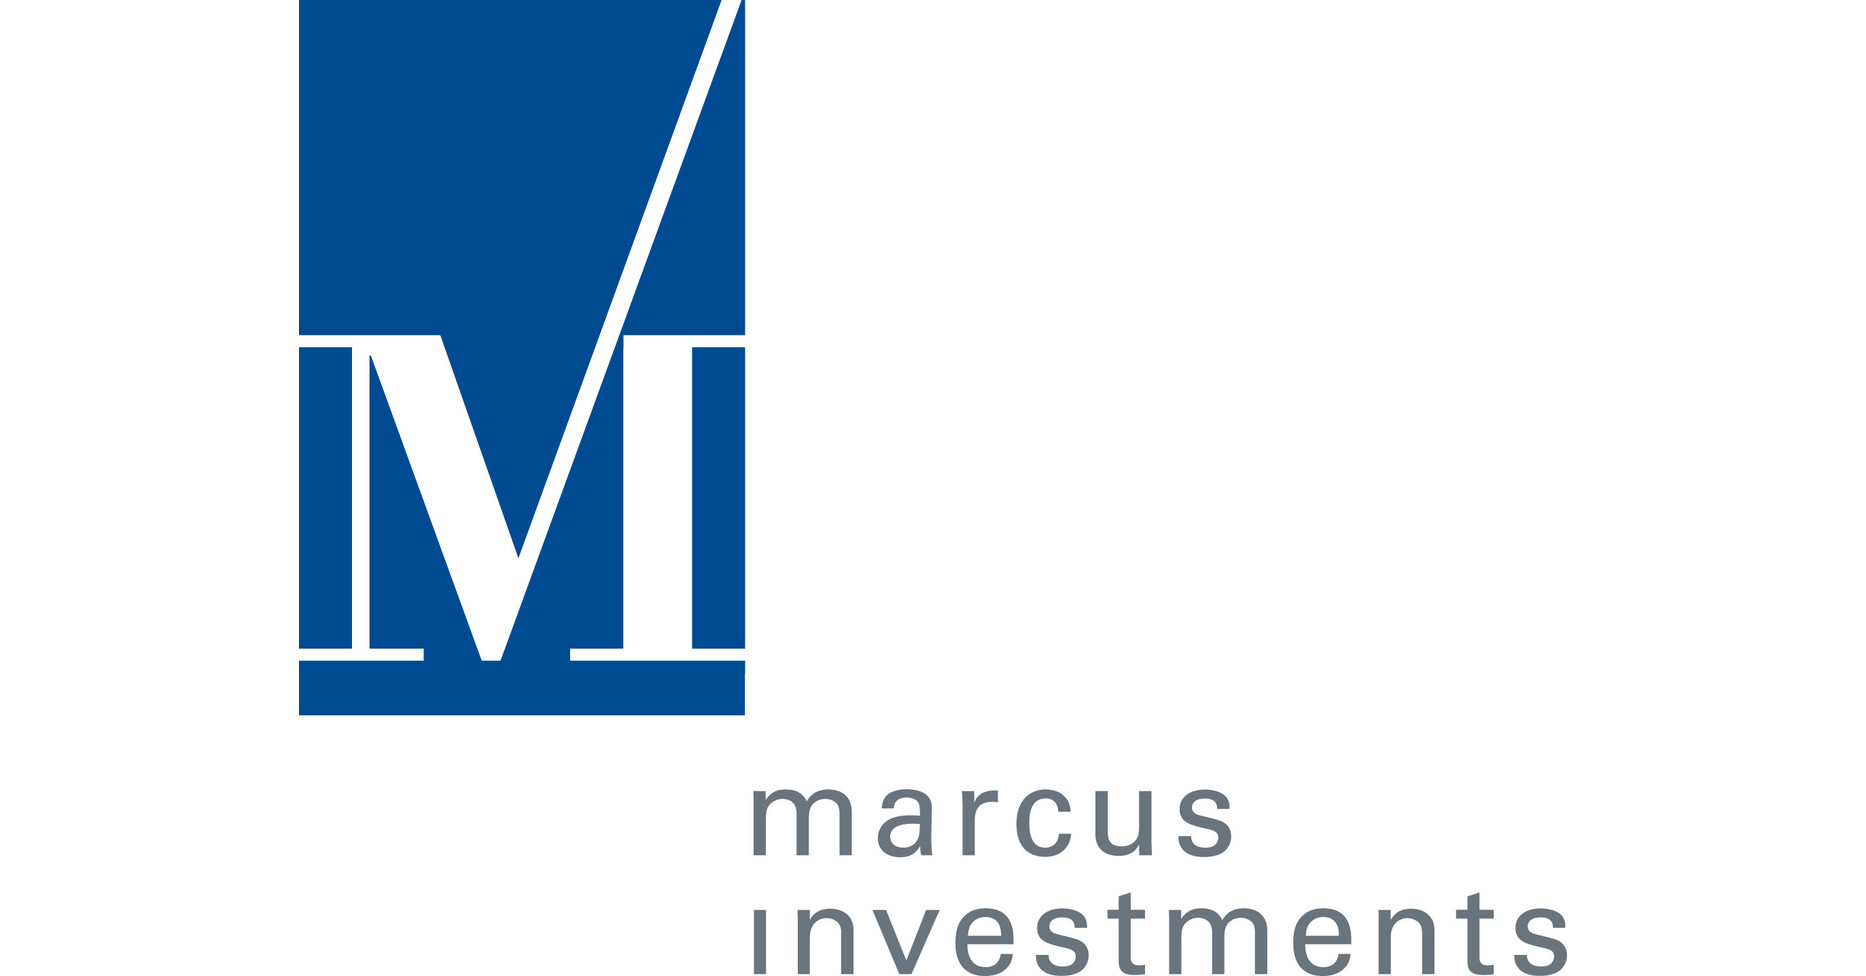 Marcus Investments Acquires Senior Living Campus In Wisconsin And Partners With Health Dimensions Group For Management He's always made my life easier by coming up with unique ideas, by being articulate and approachable with our clients, and by investing care and hard work into every project. marcus investments acquires senior living campus in wisconsin and partners with health dimensions group for management